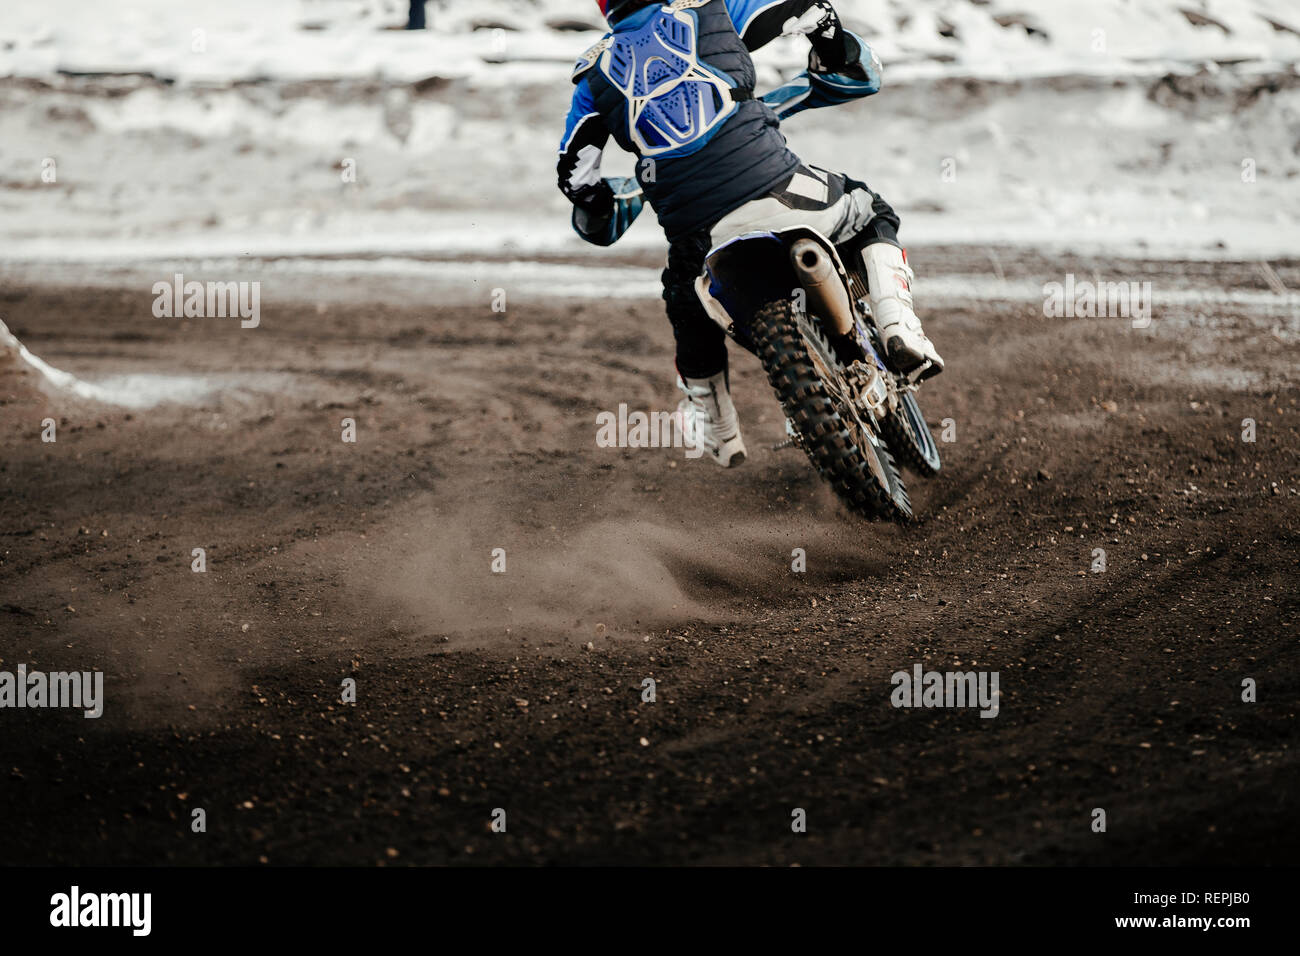 Wheel Track High Resolution Stock Photography And Images Alamy